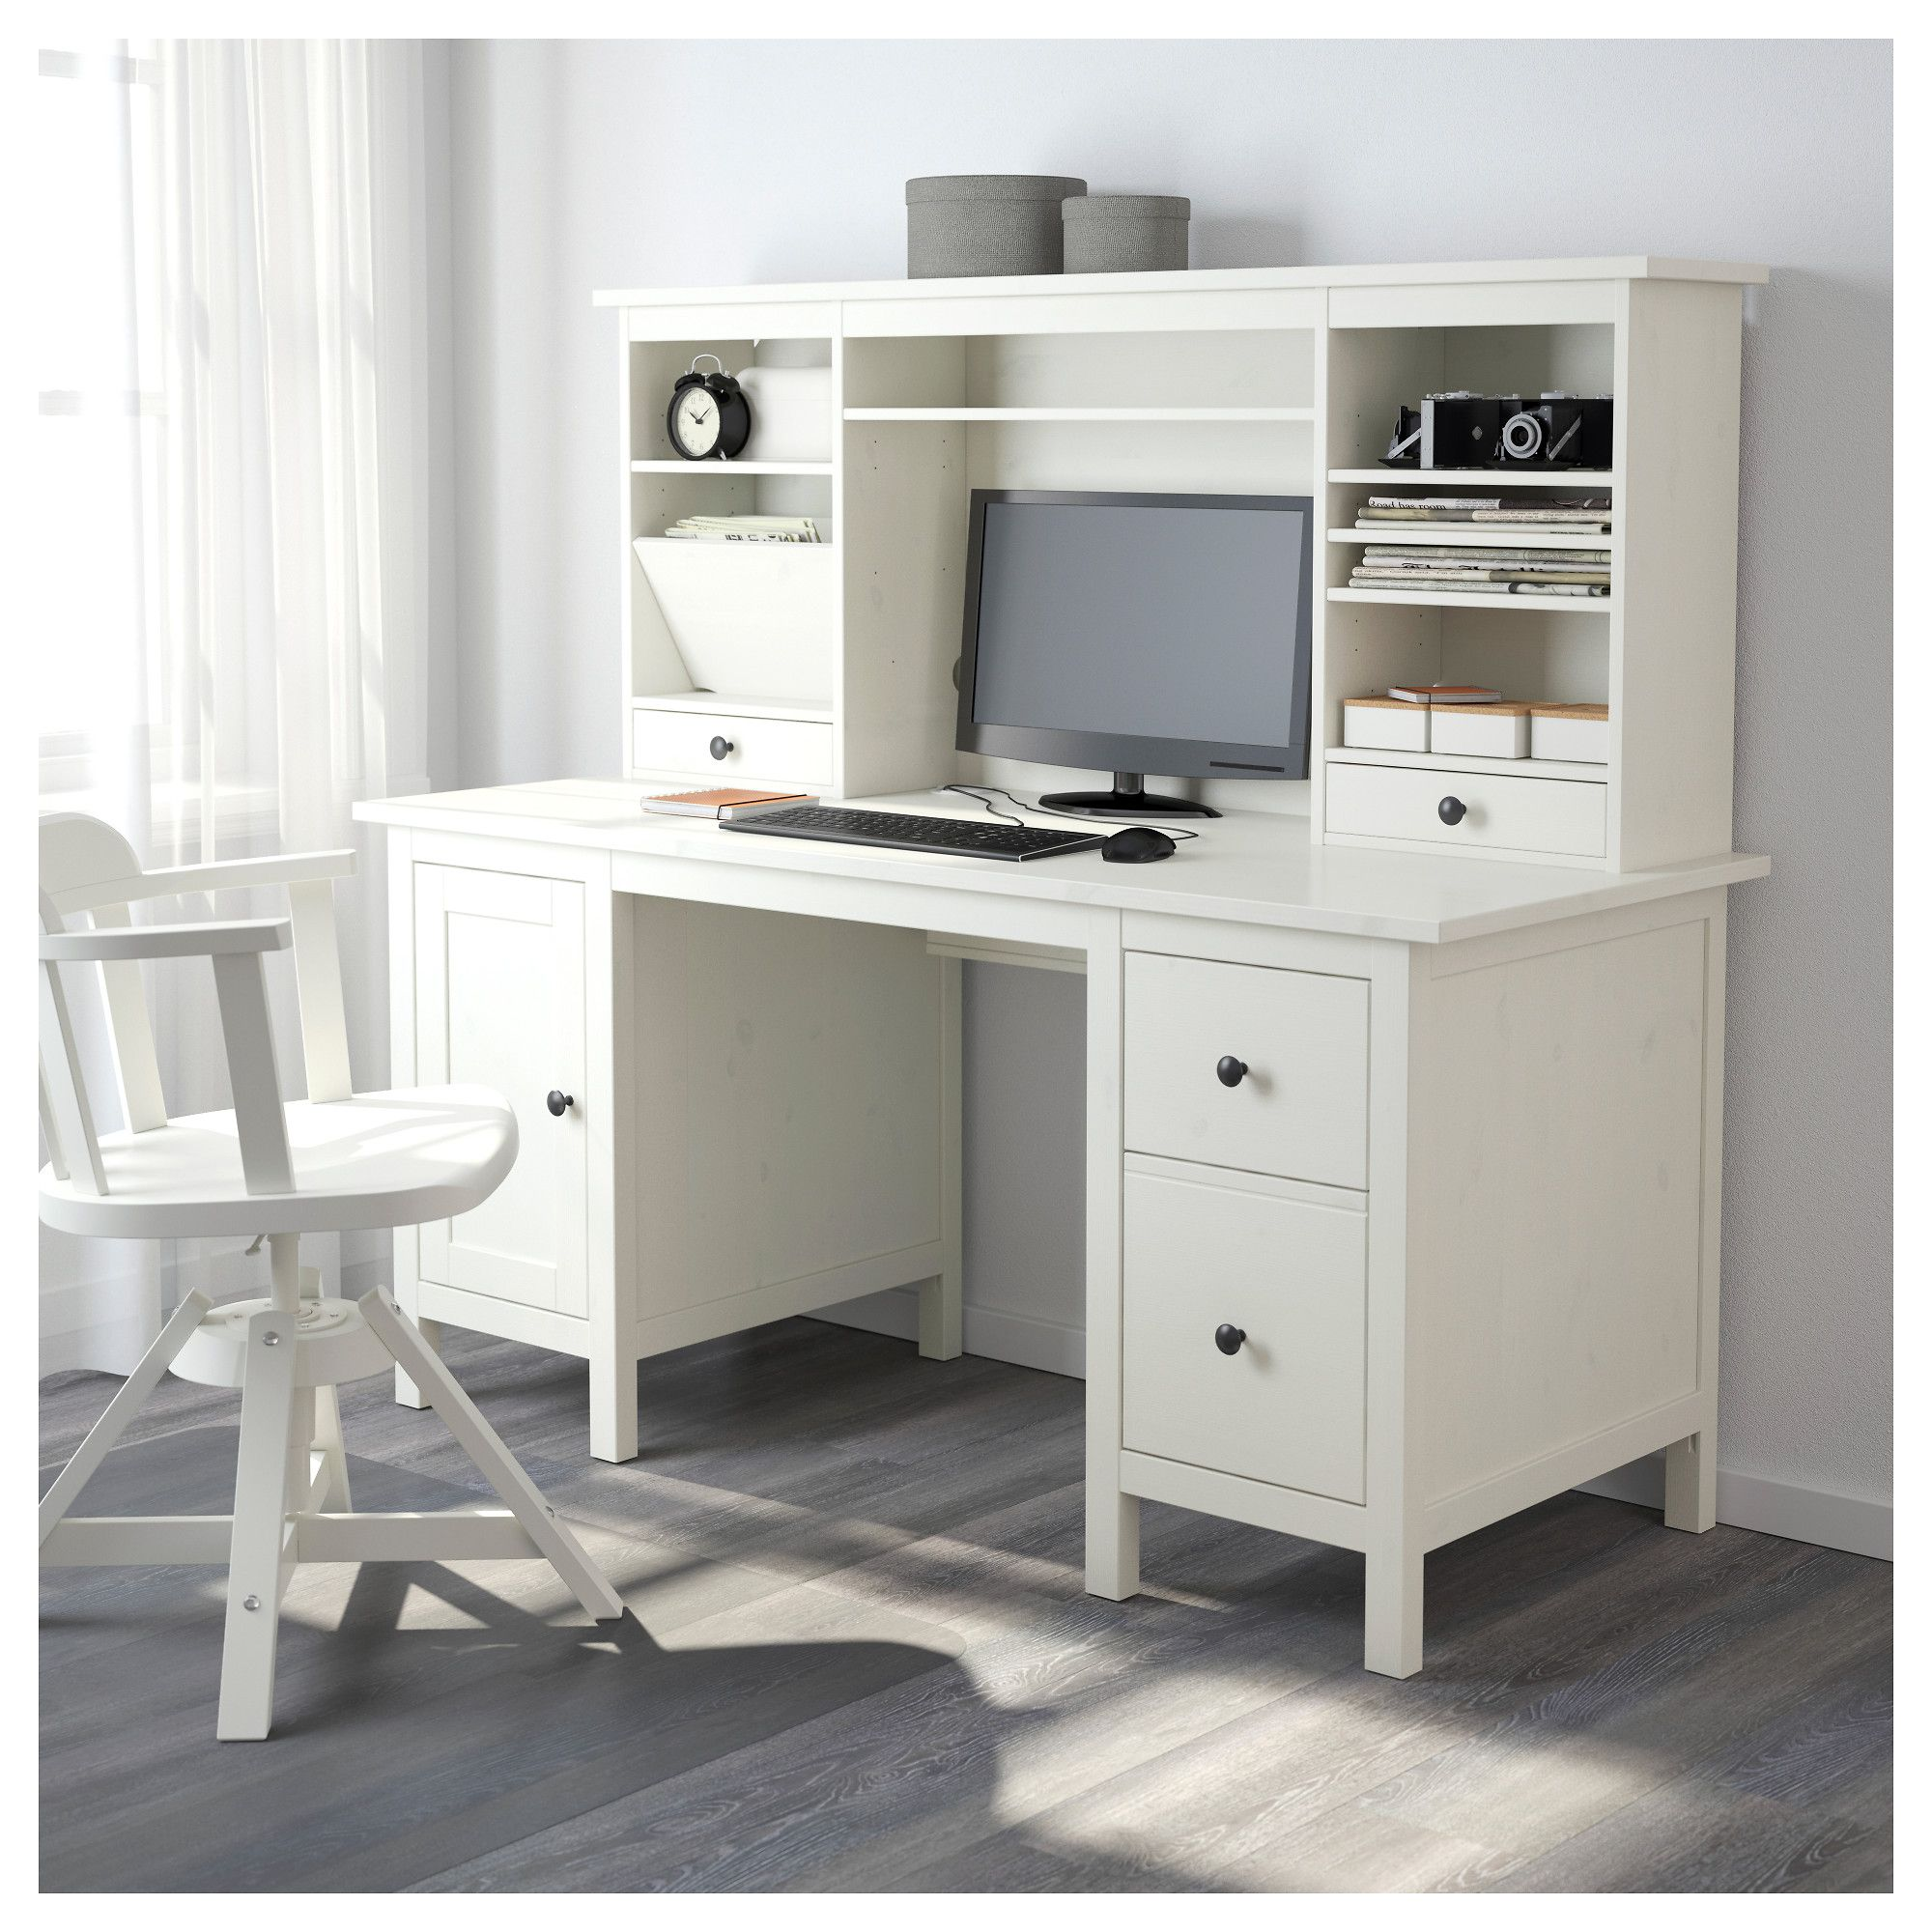 ikea dviz office desk and colour thyge resistant surface the desks melamine hutch co secretary stain durable study with silver is white